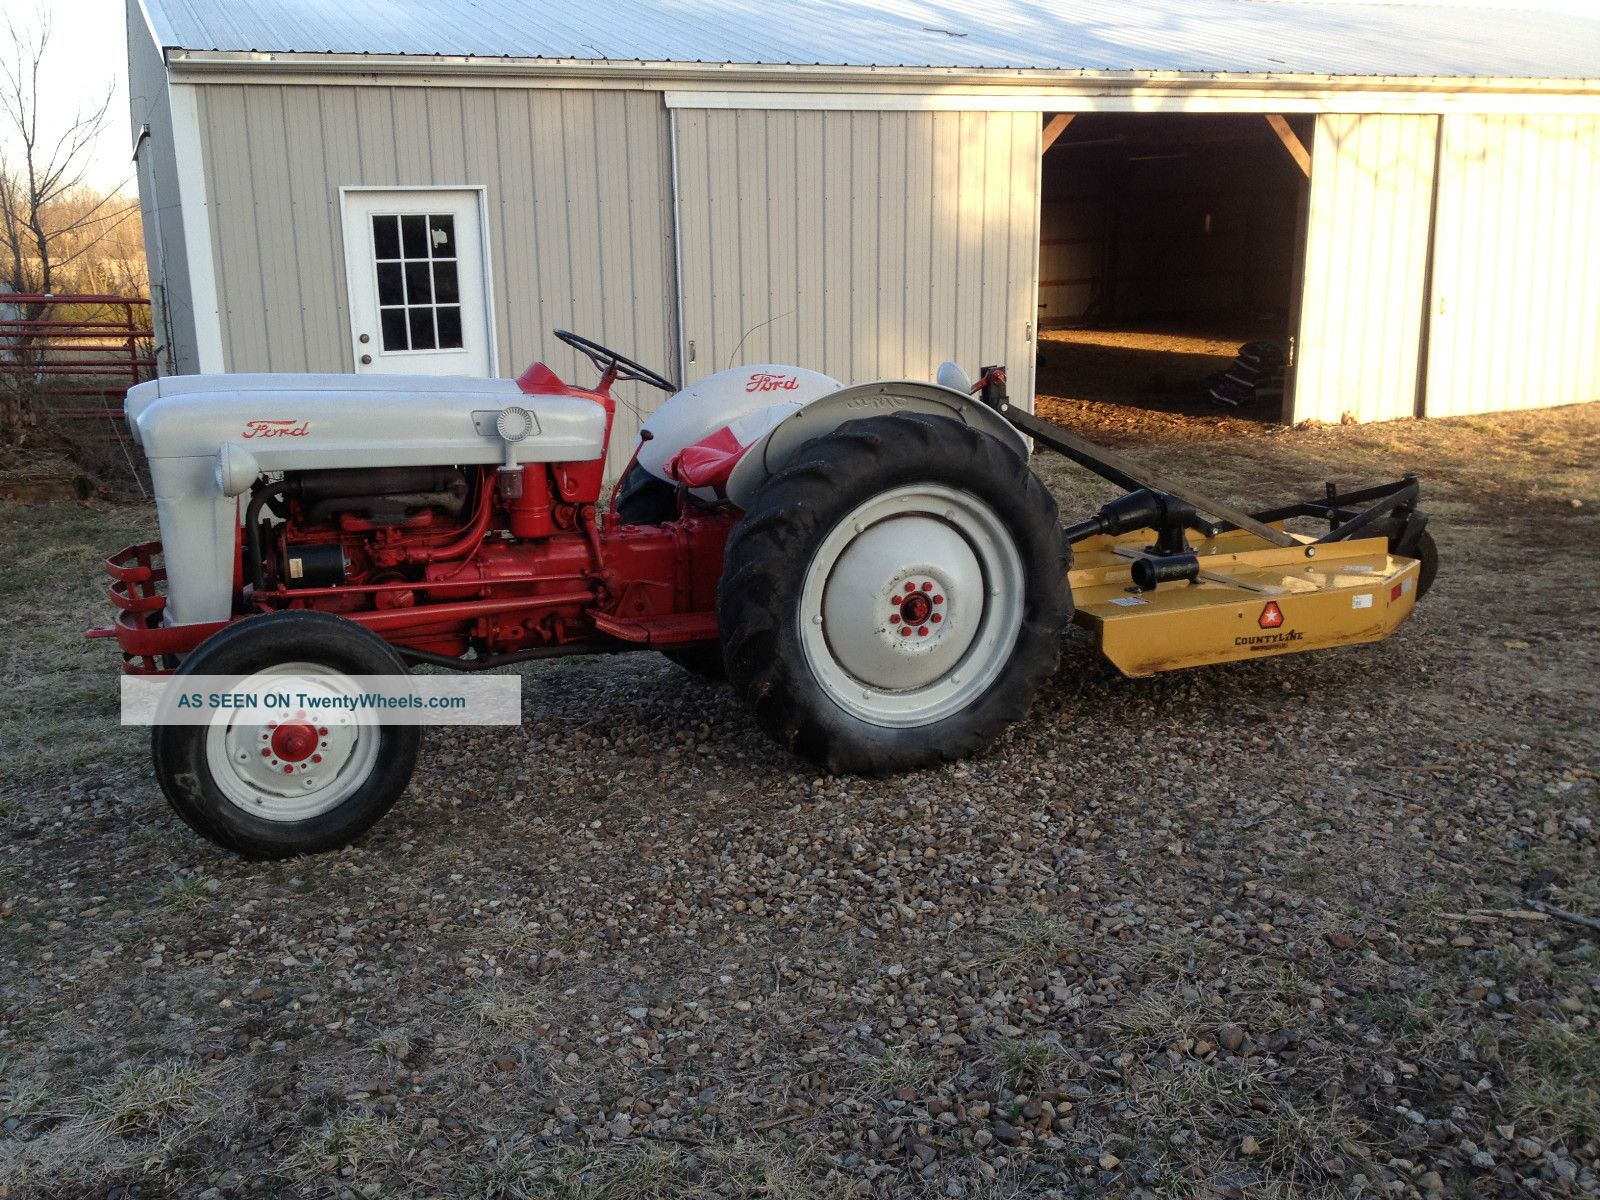 Ford Jubilee Specifications : Ford jubilee tractor hp